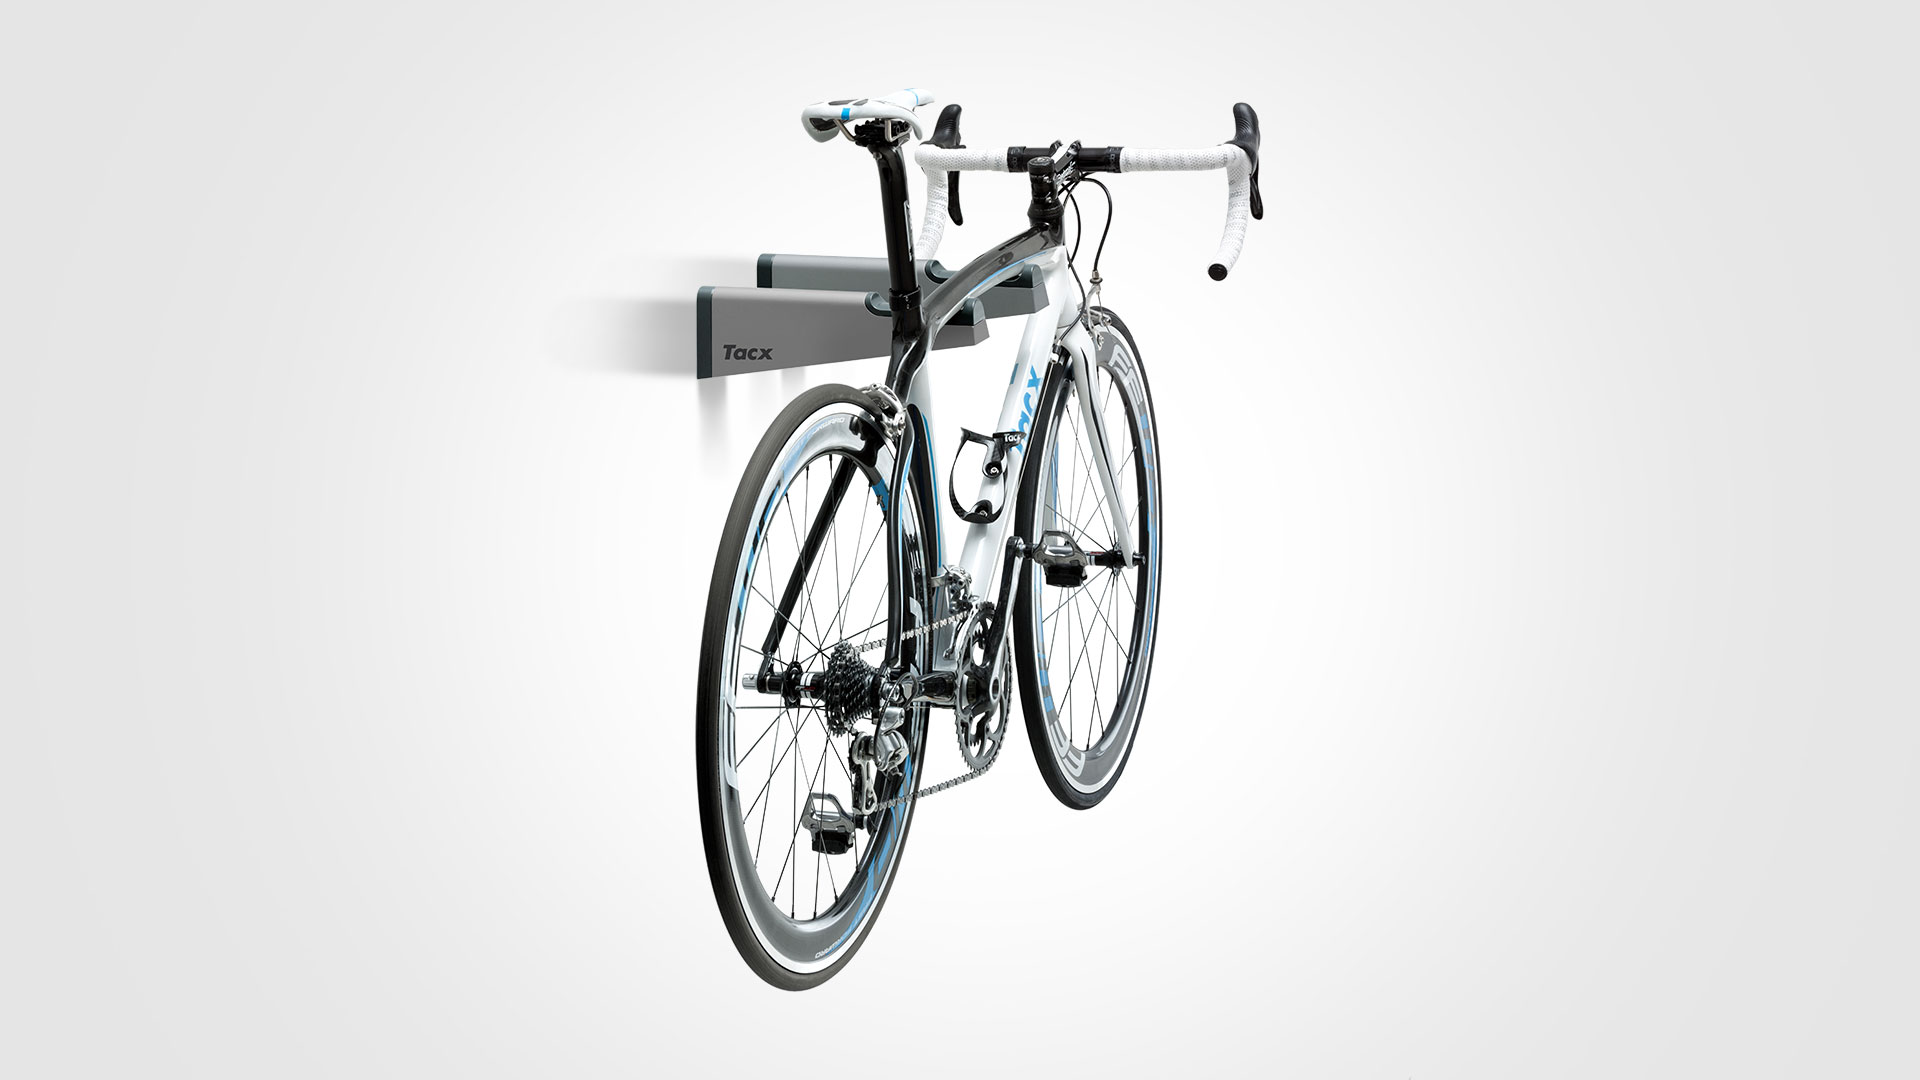 SUPPORTO BICI A MURO TACX BIKEBRACKET SUSPENSION SYSTEM MOUNTED.jpg